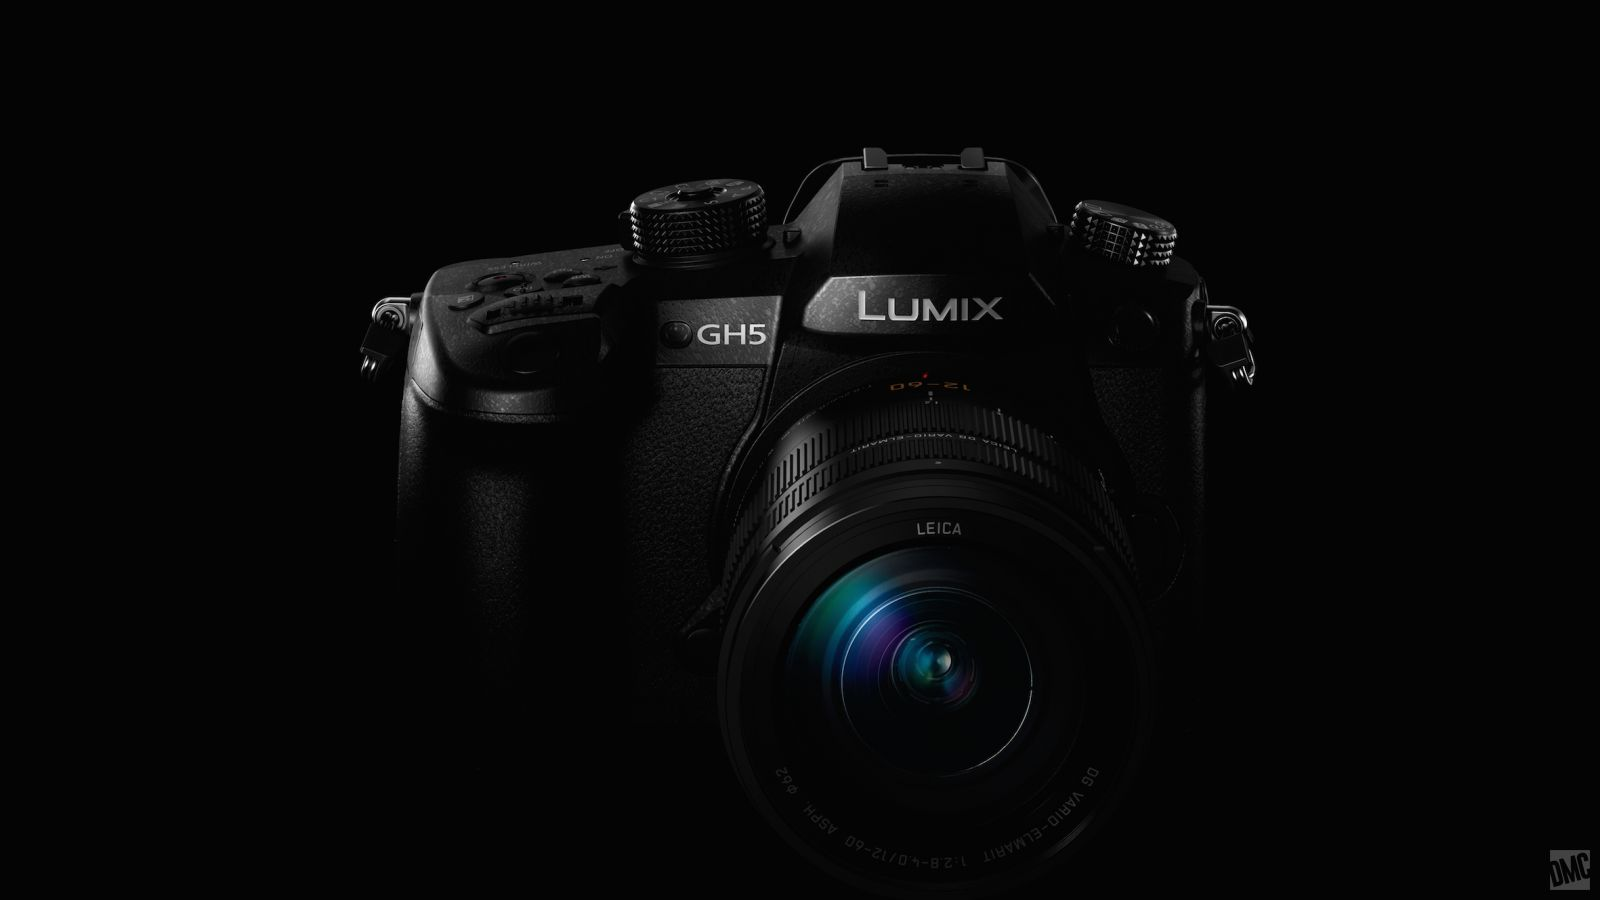 The New Panasonic GH5